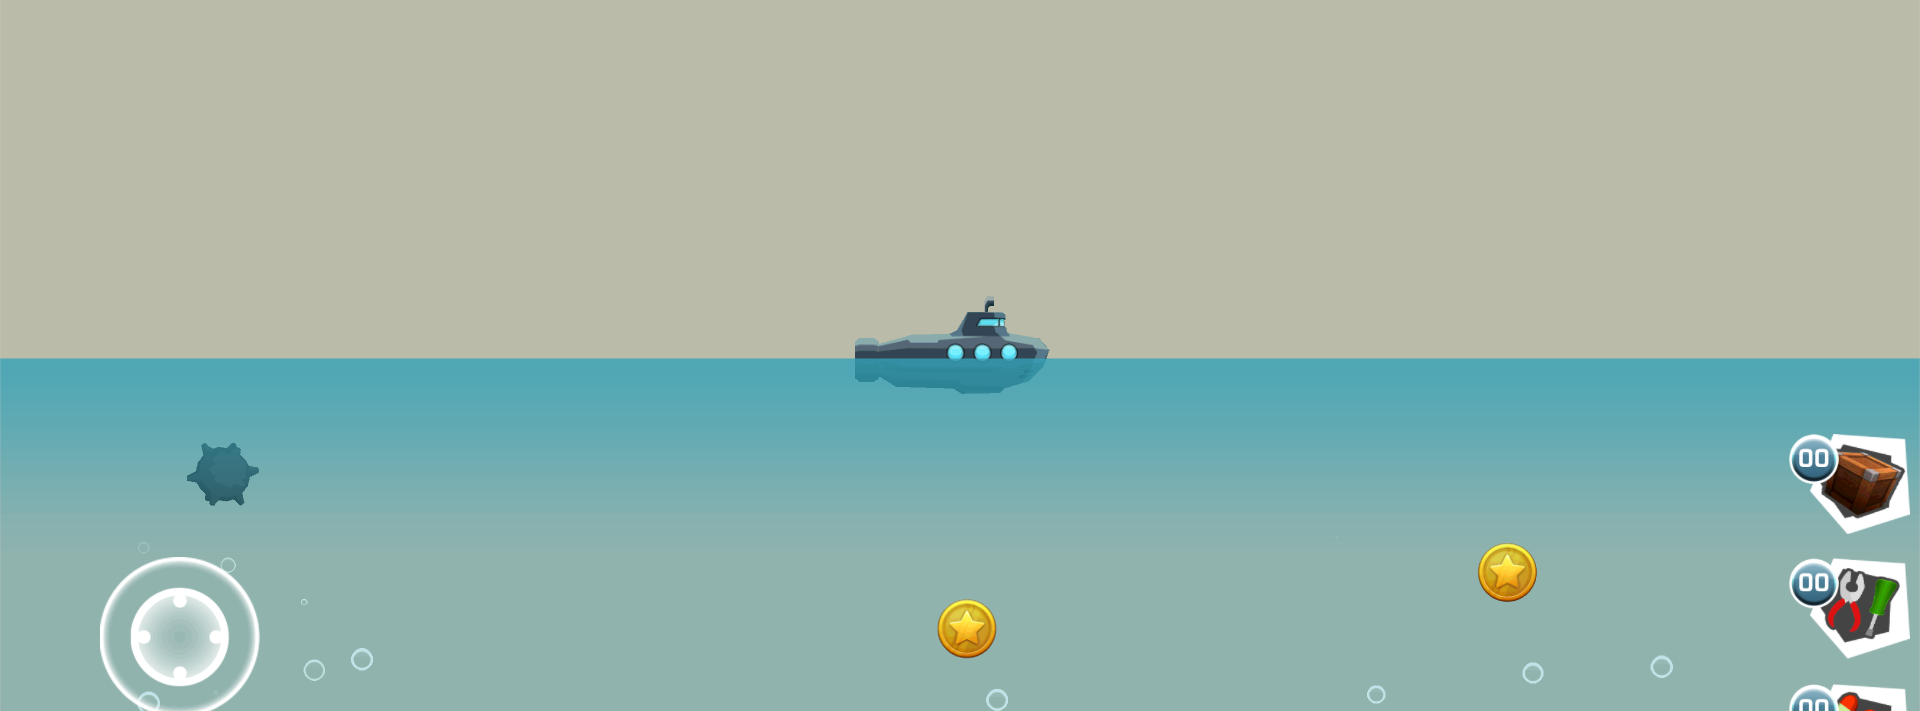 Submarine - Underwater world (2D)